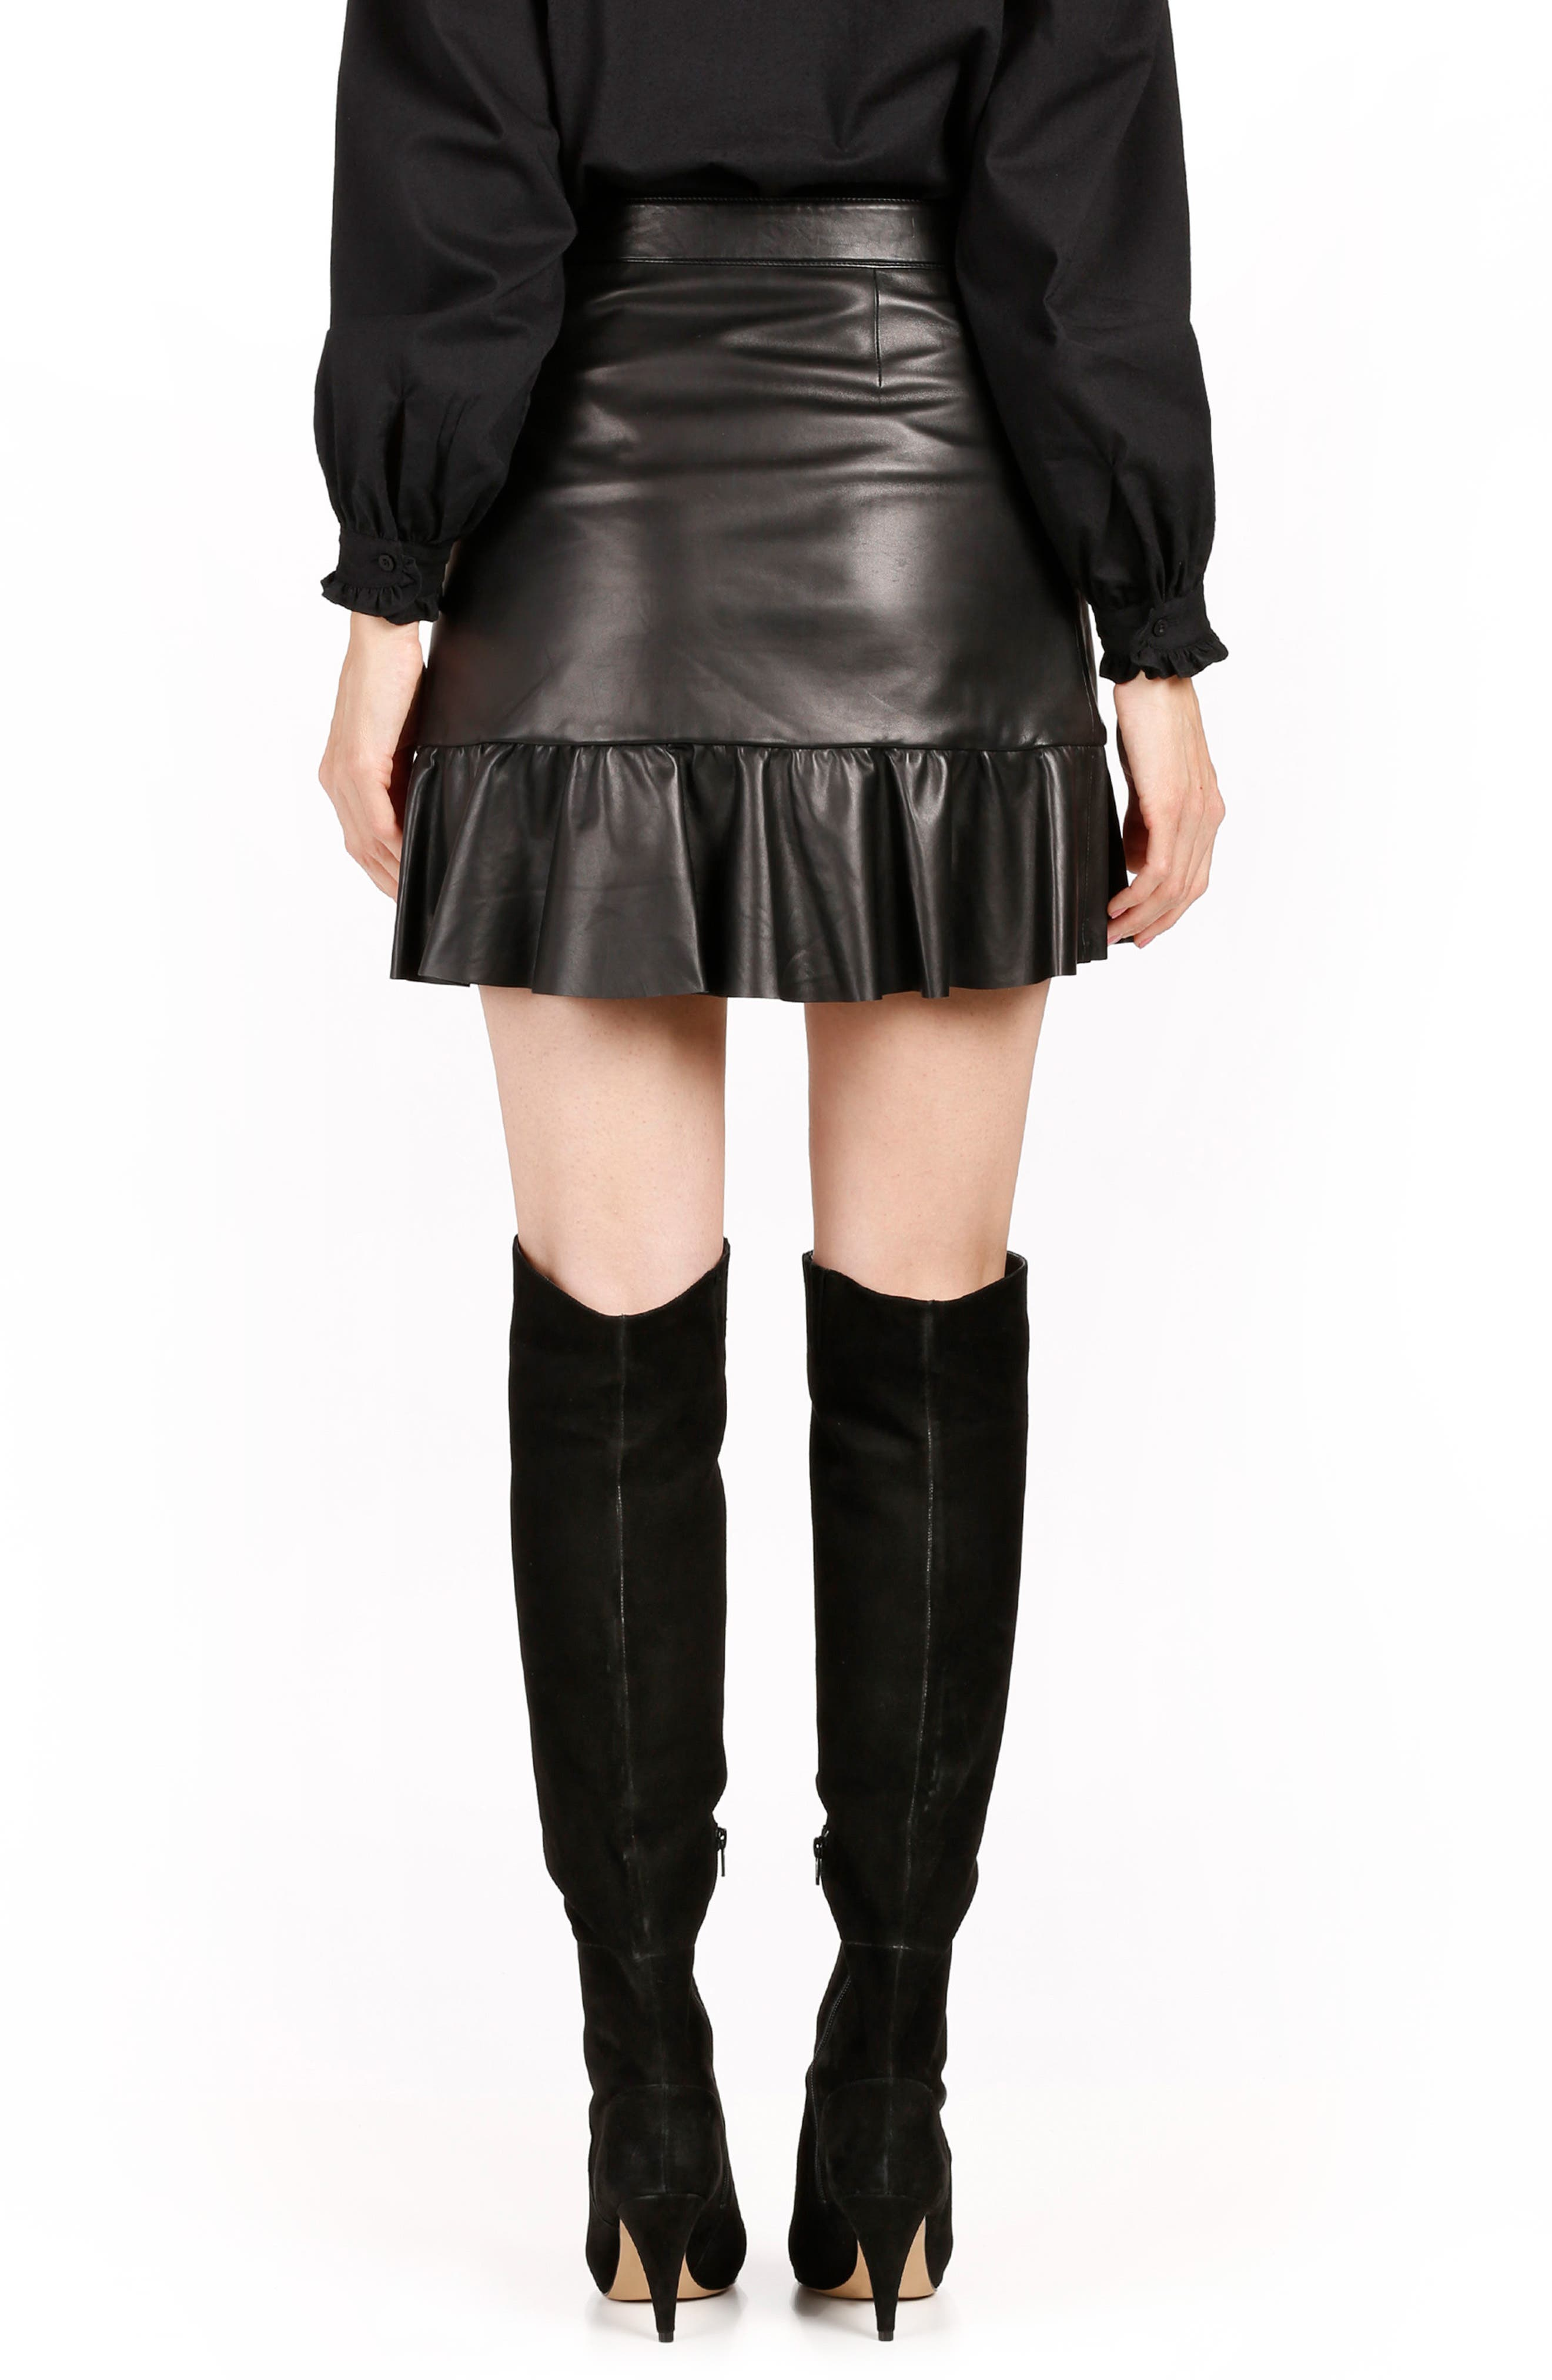 Nivelle Ruffle Leather Skirt,                             Alternate thumbnail 2, color,                             001